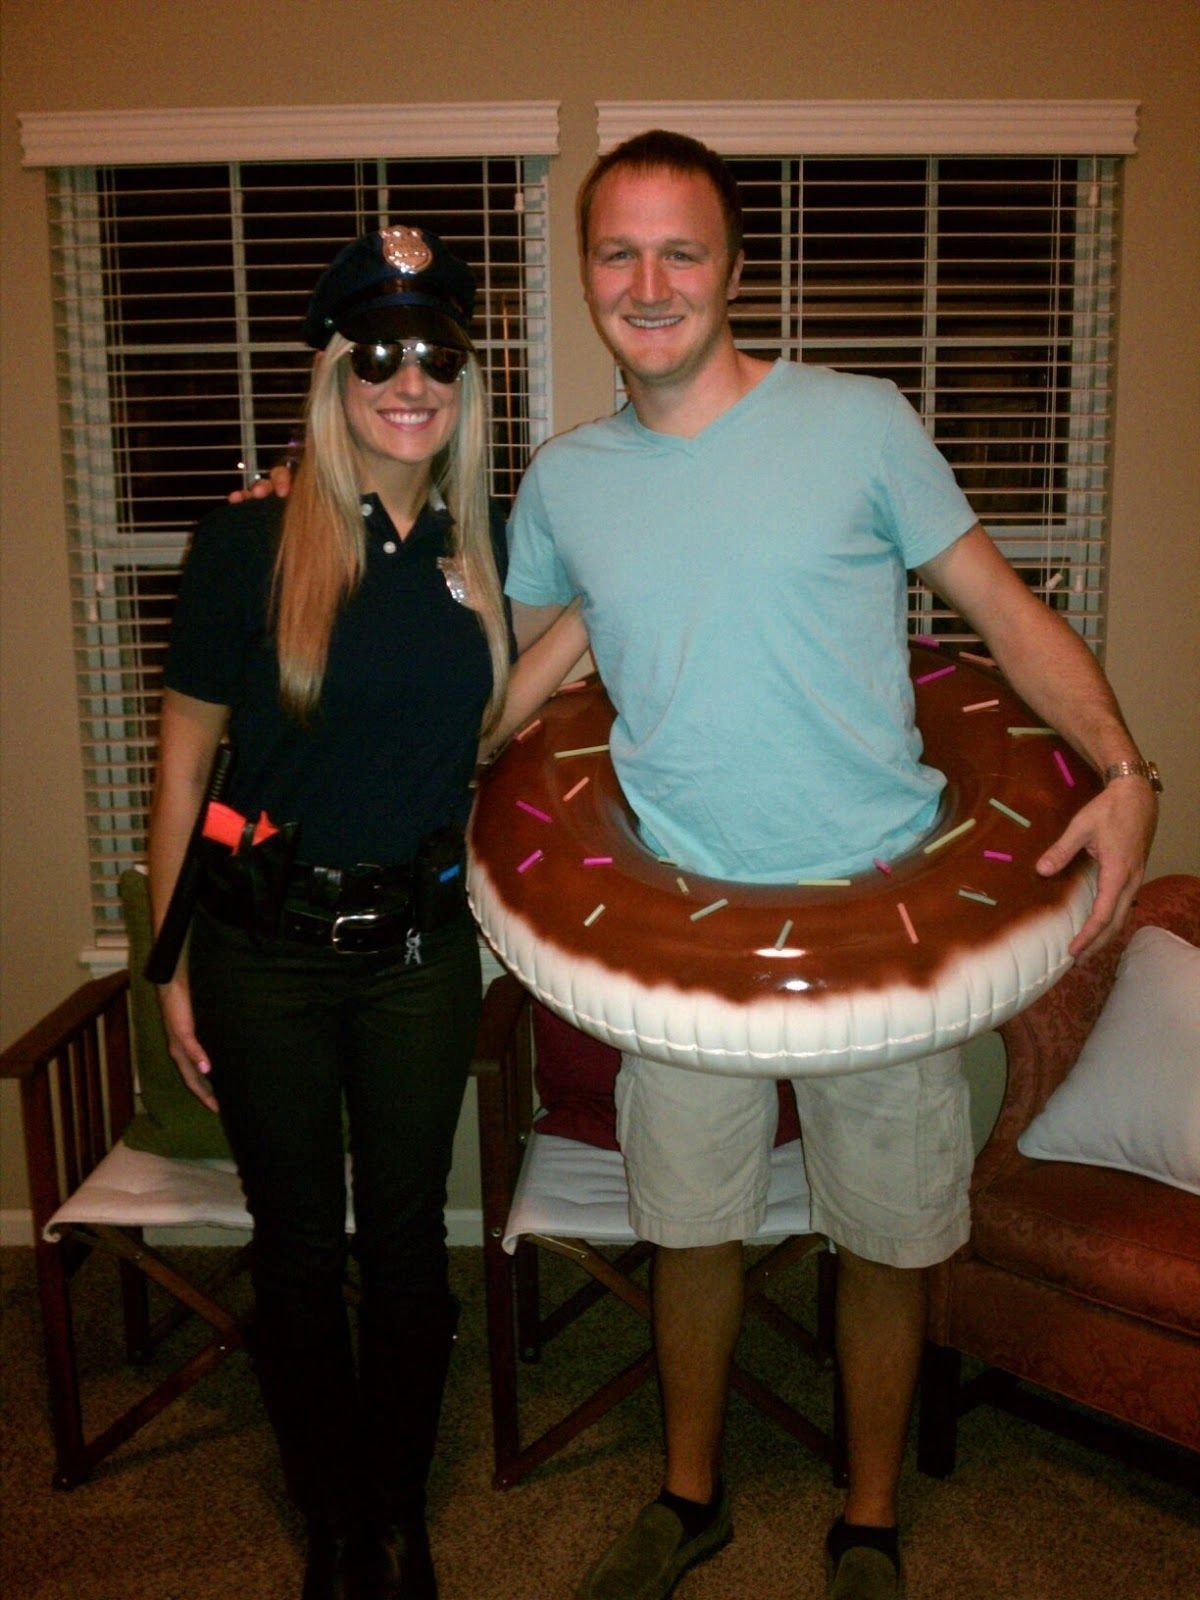 cop and donut. tired of the sexy policewoman costume? bring a whole